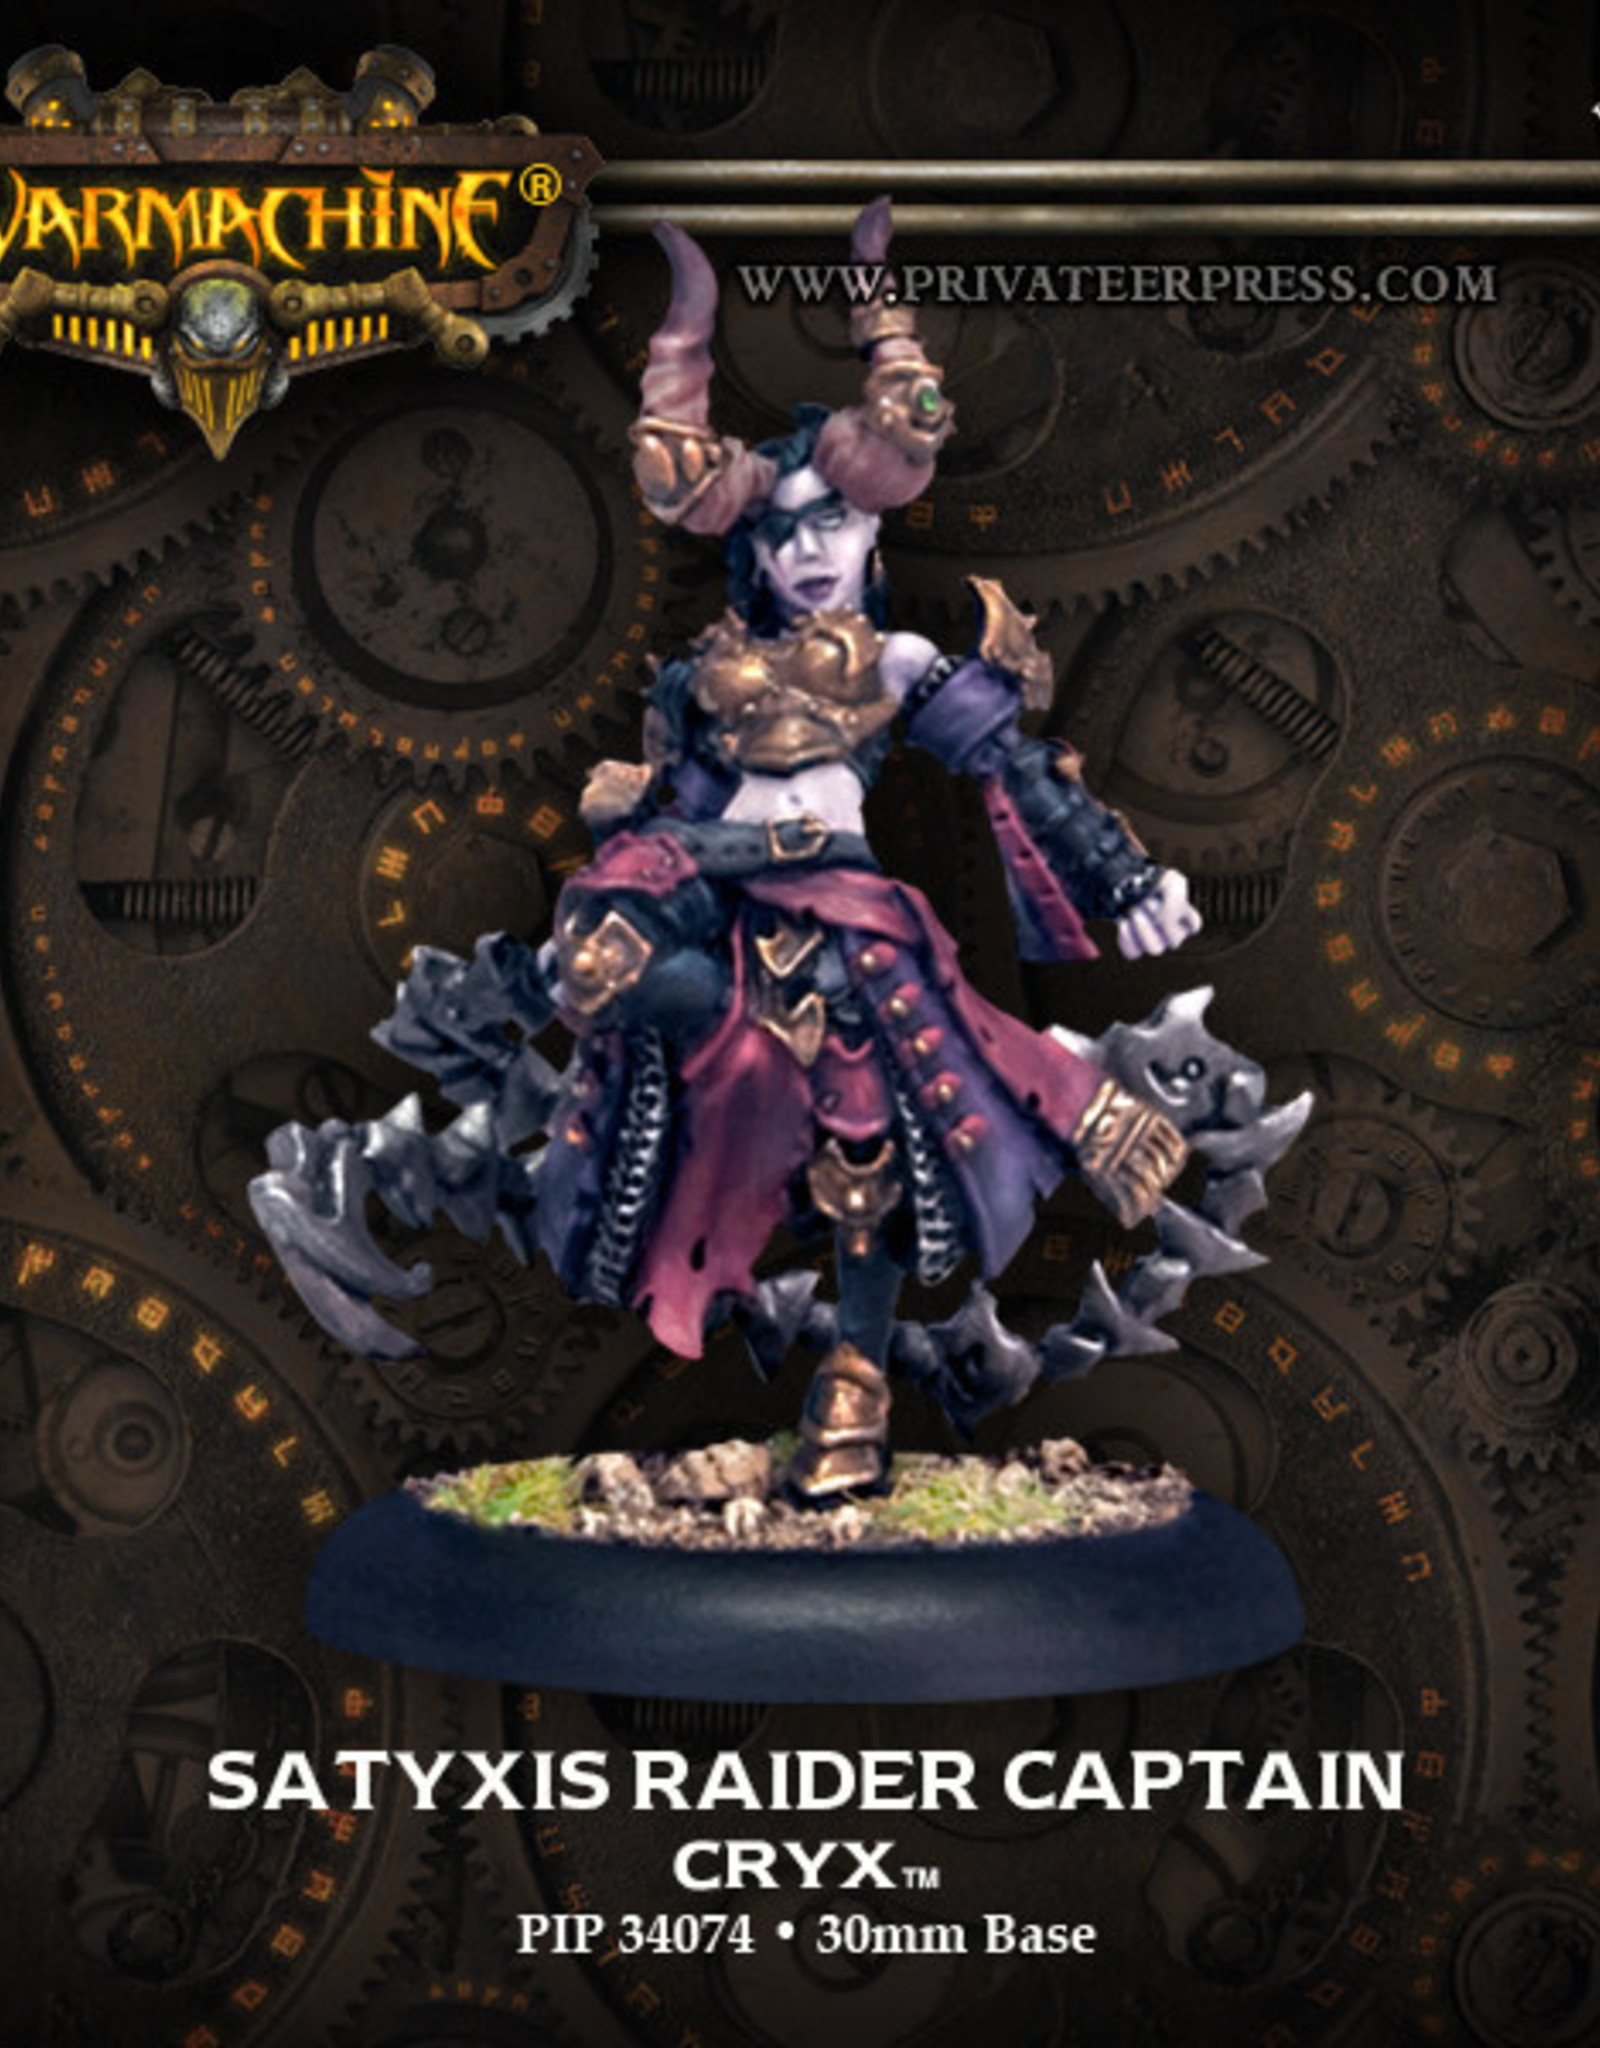 Warmachine Cryx - Satyxis Raider Captain